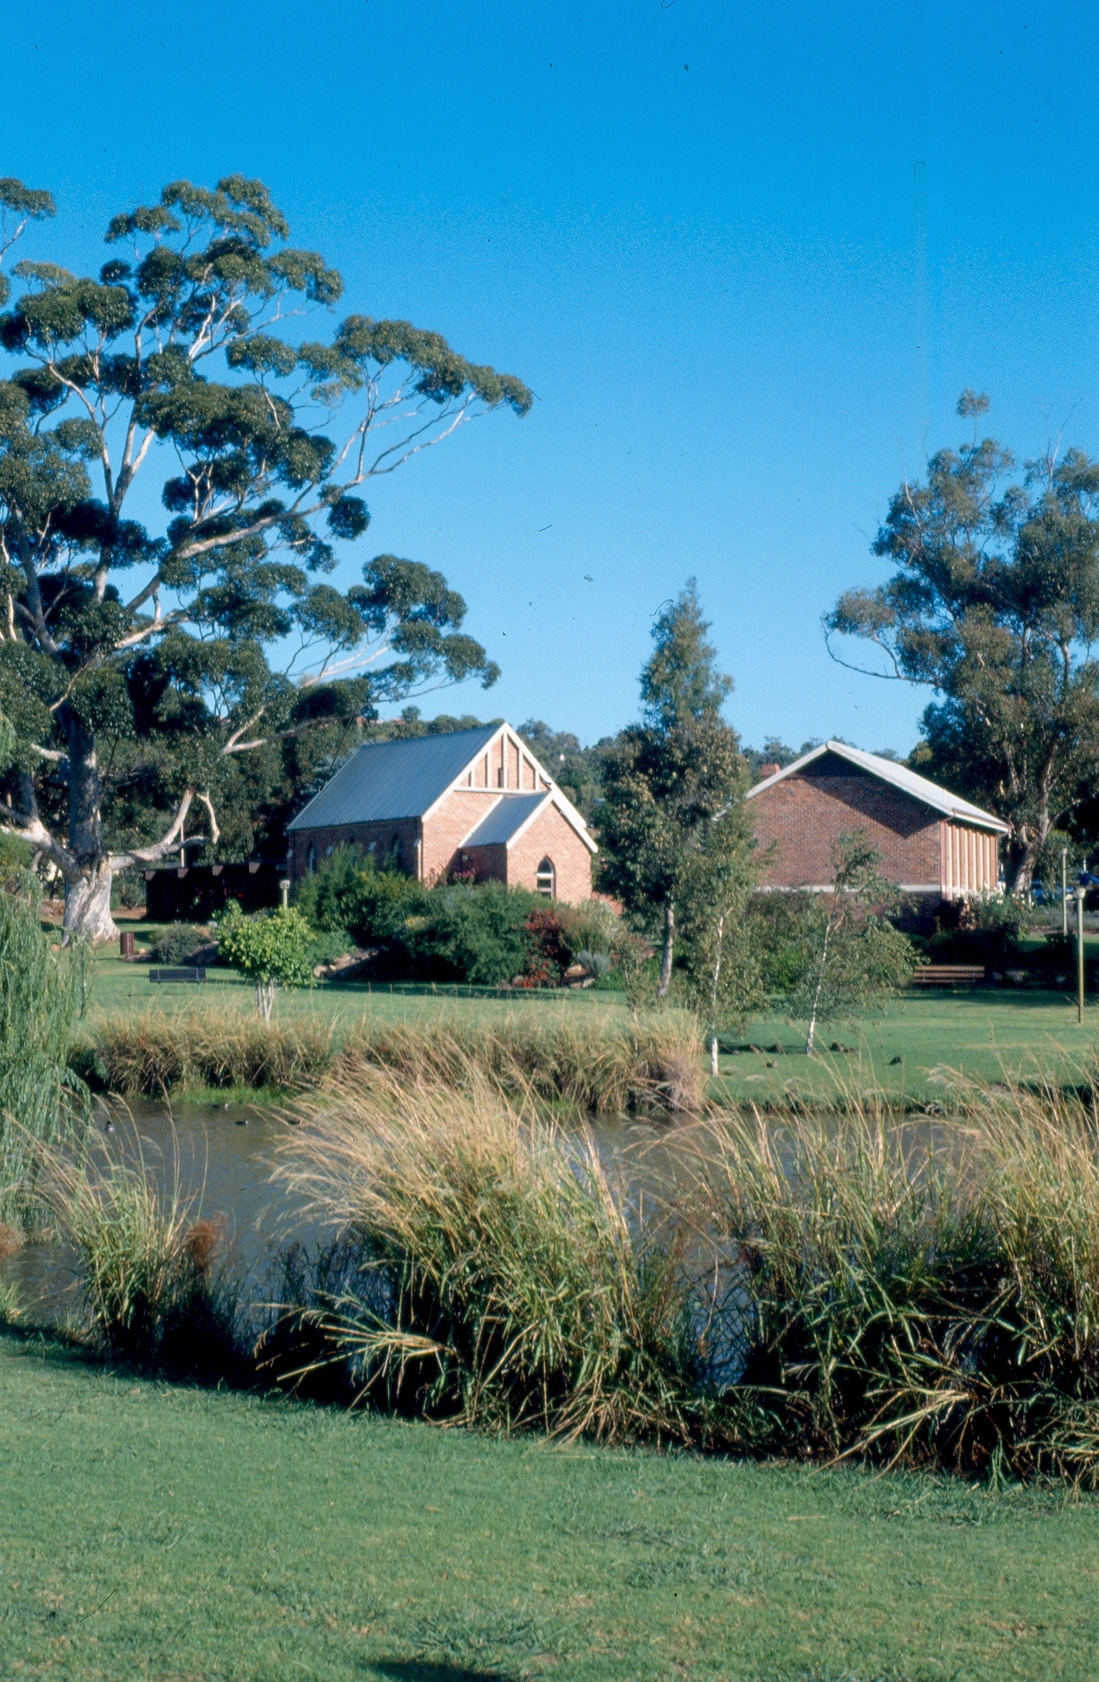 Popular businesses & services in Armadale